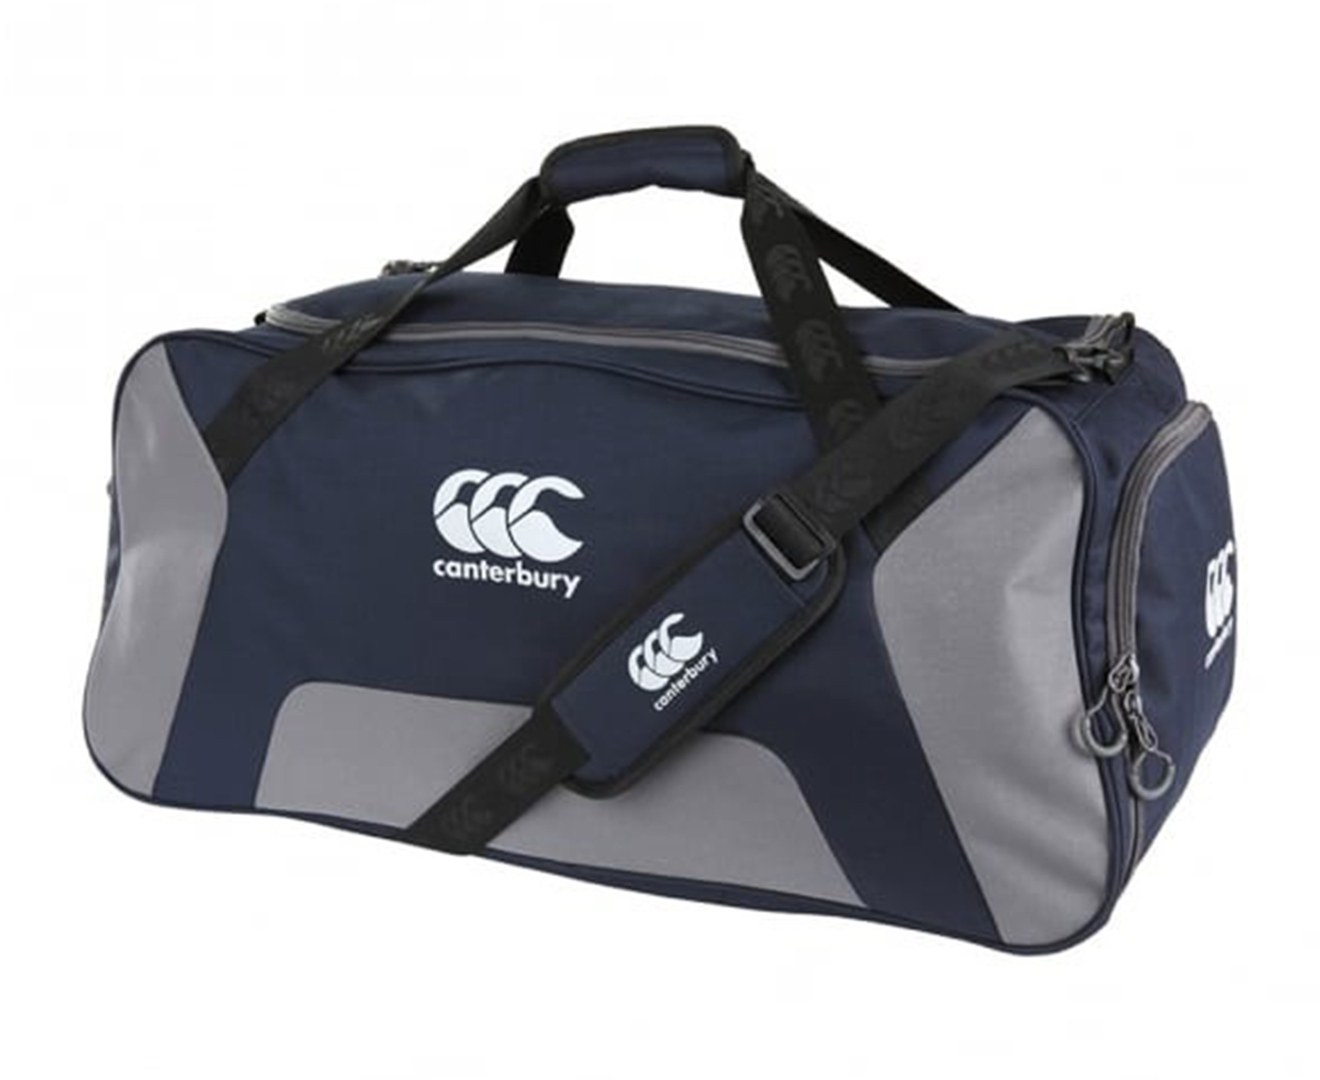 00bc81c4421a Canterbury CCC Sports Bag - Navy 9339403895205